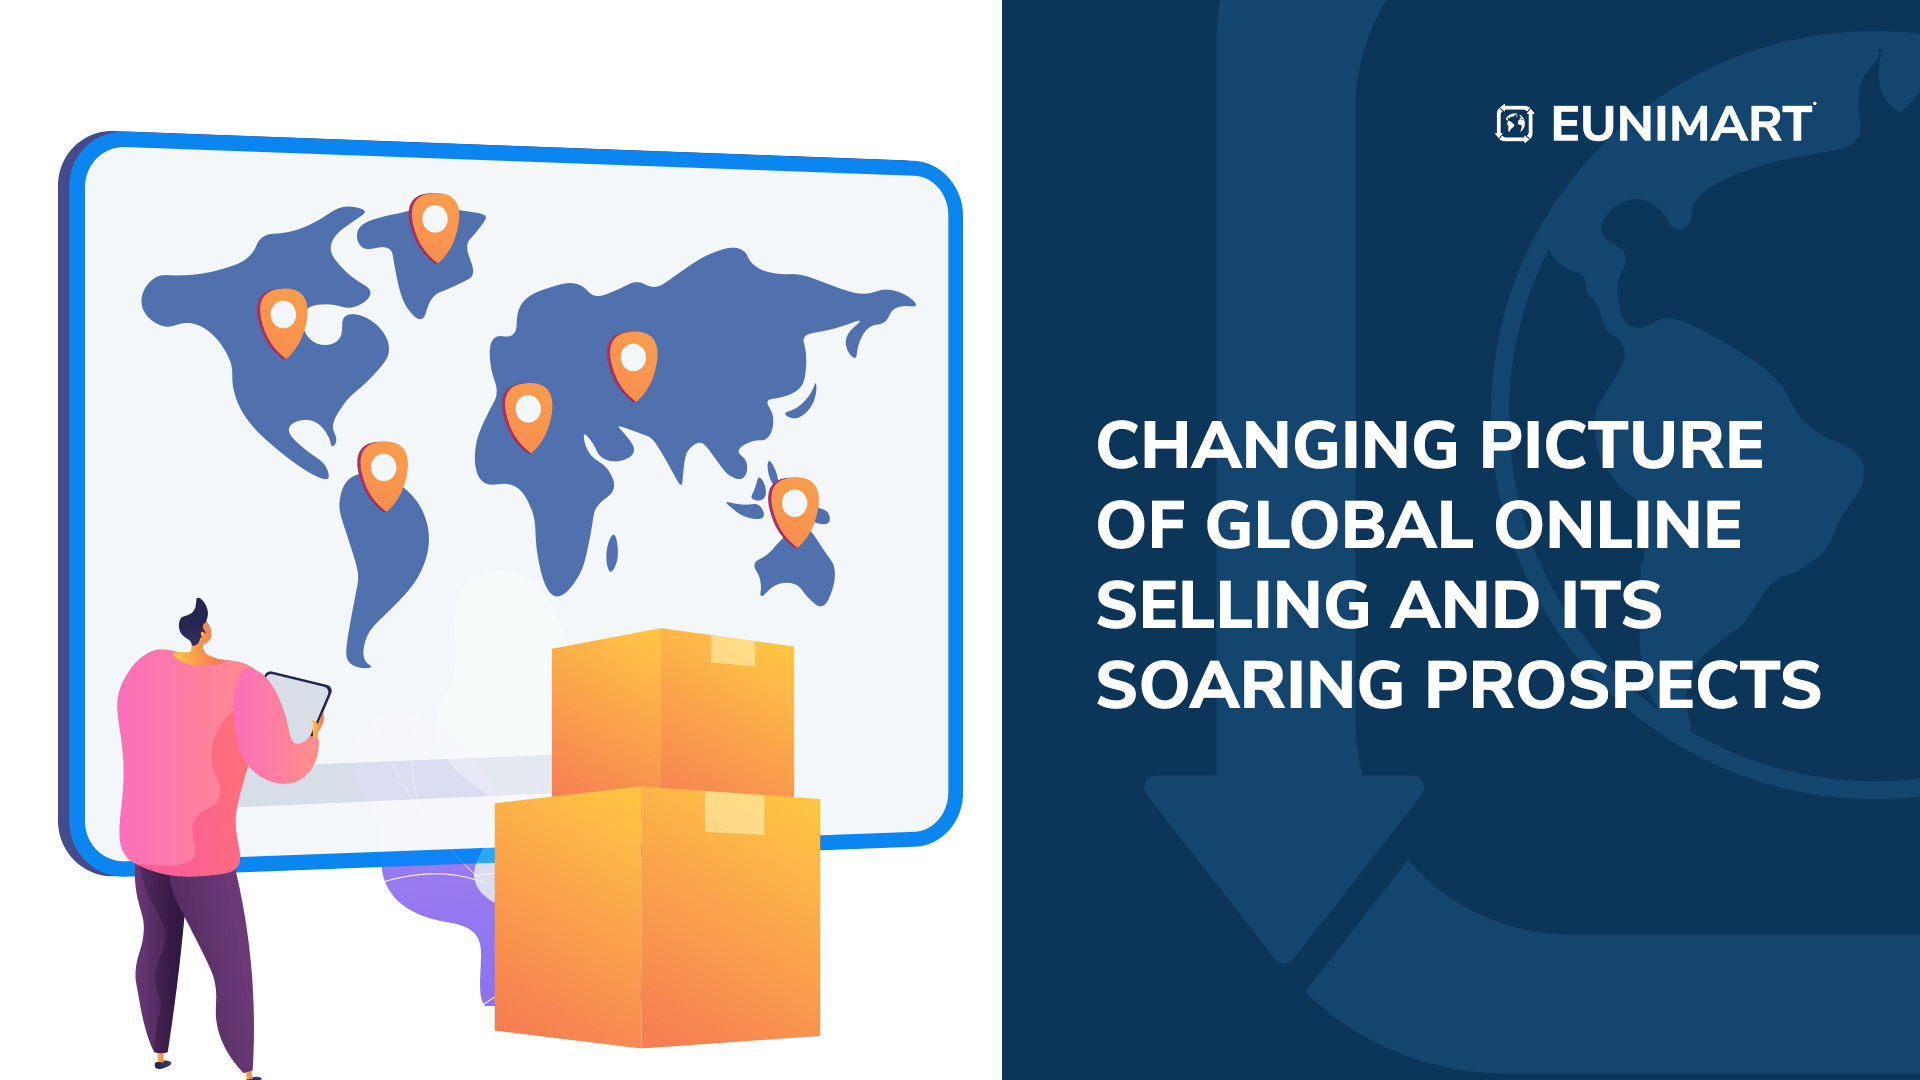 Changing Picture of Global Online Selling and its Soaring Prospects